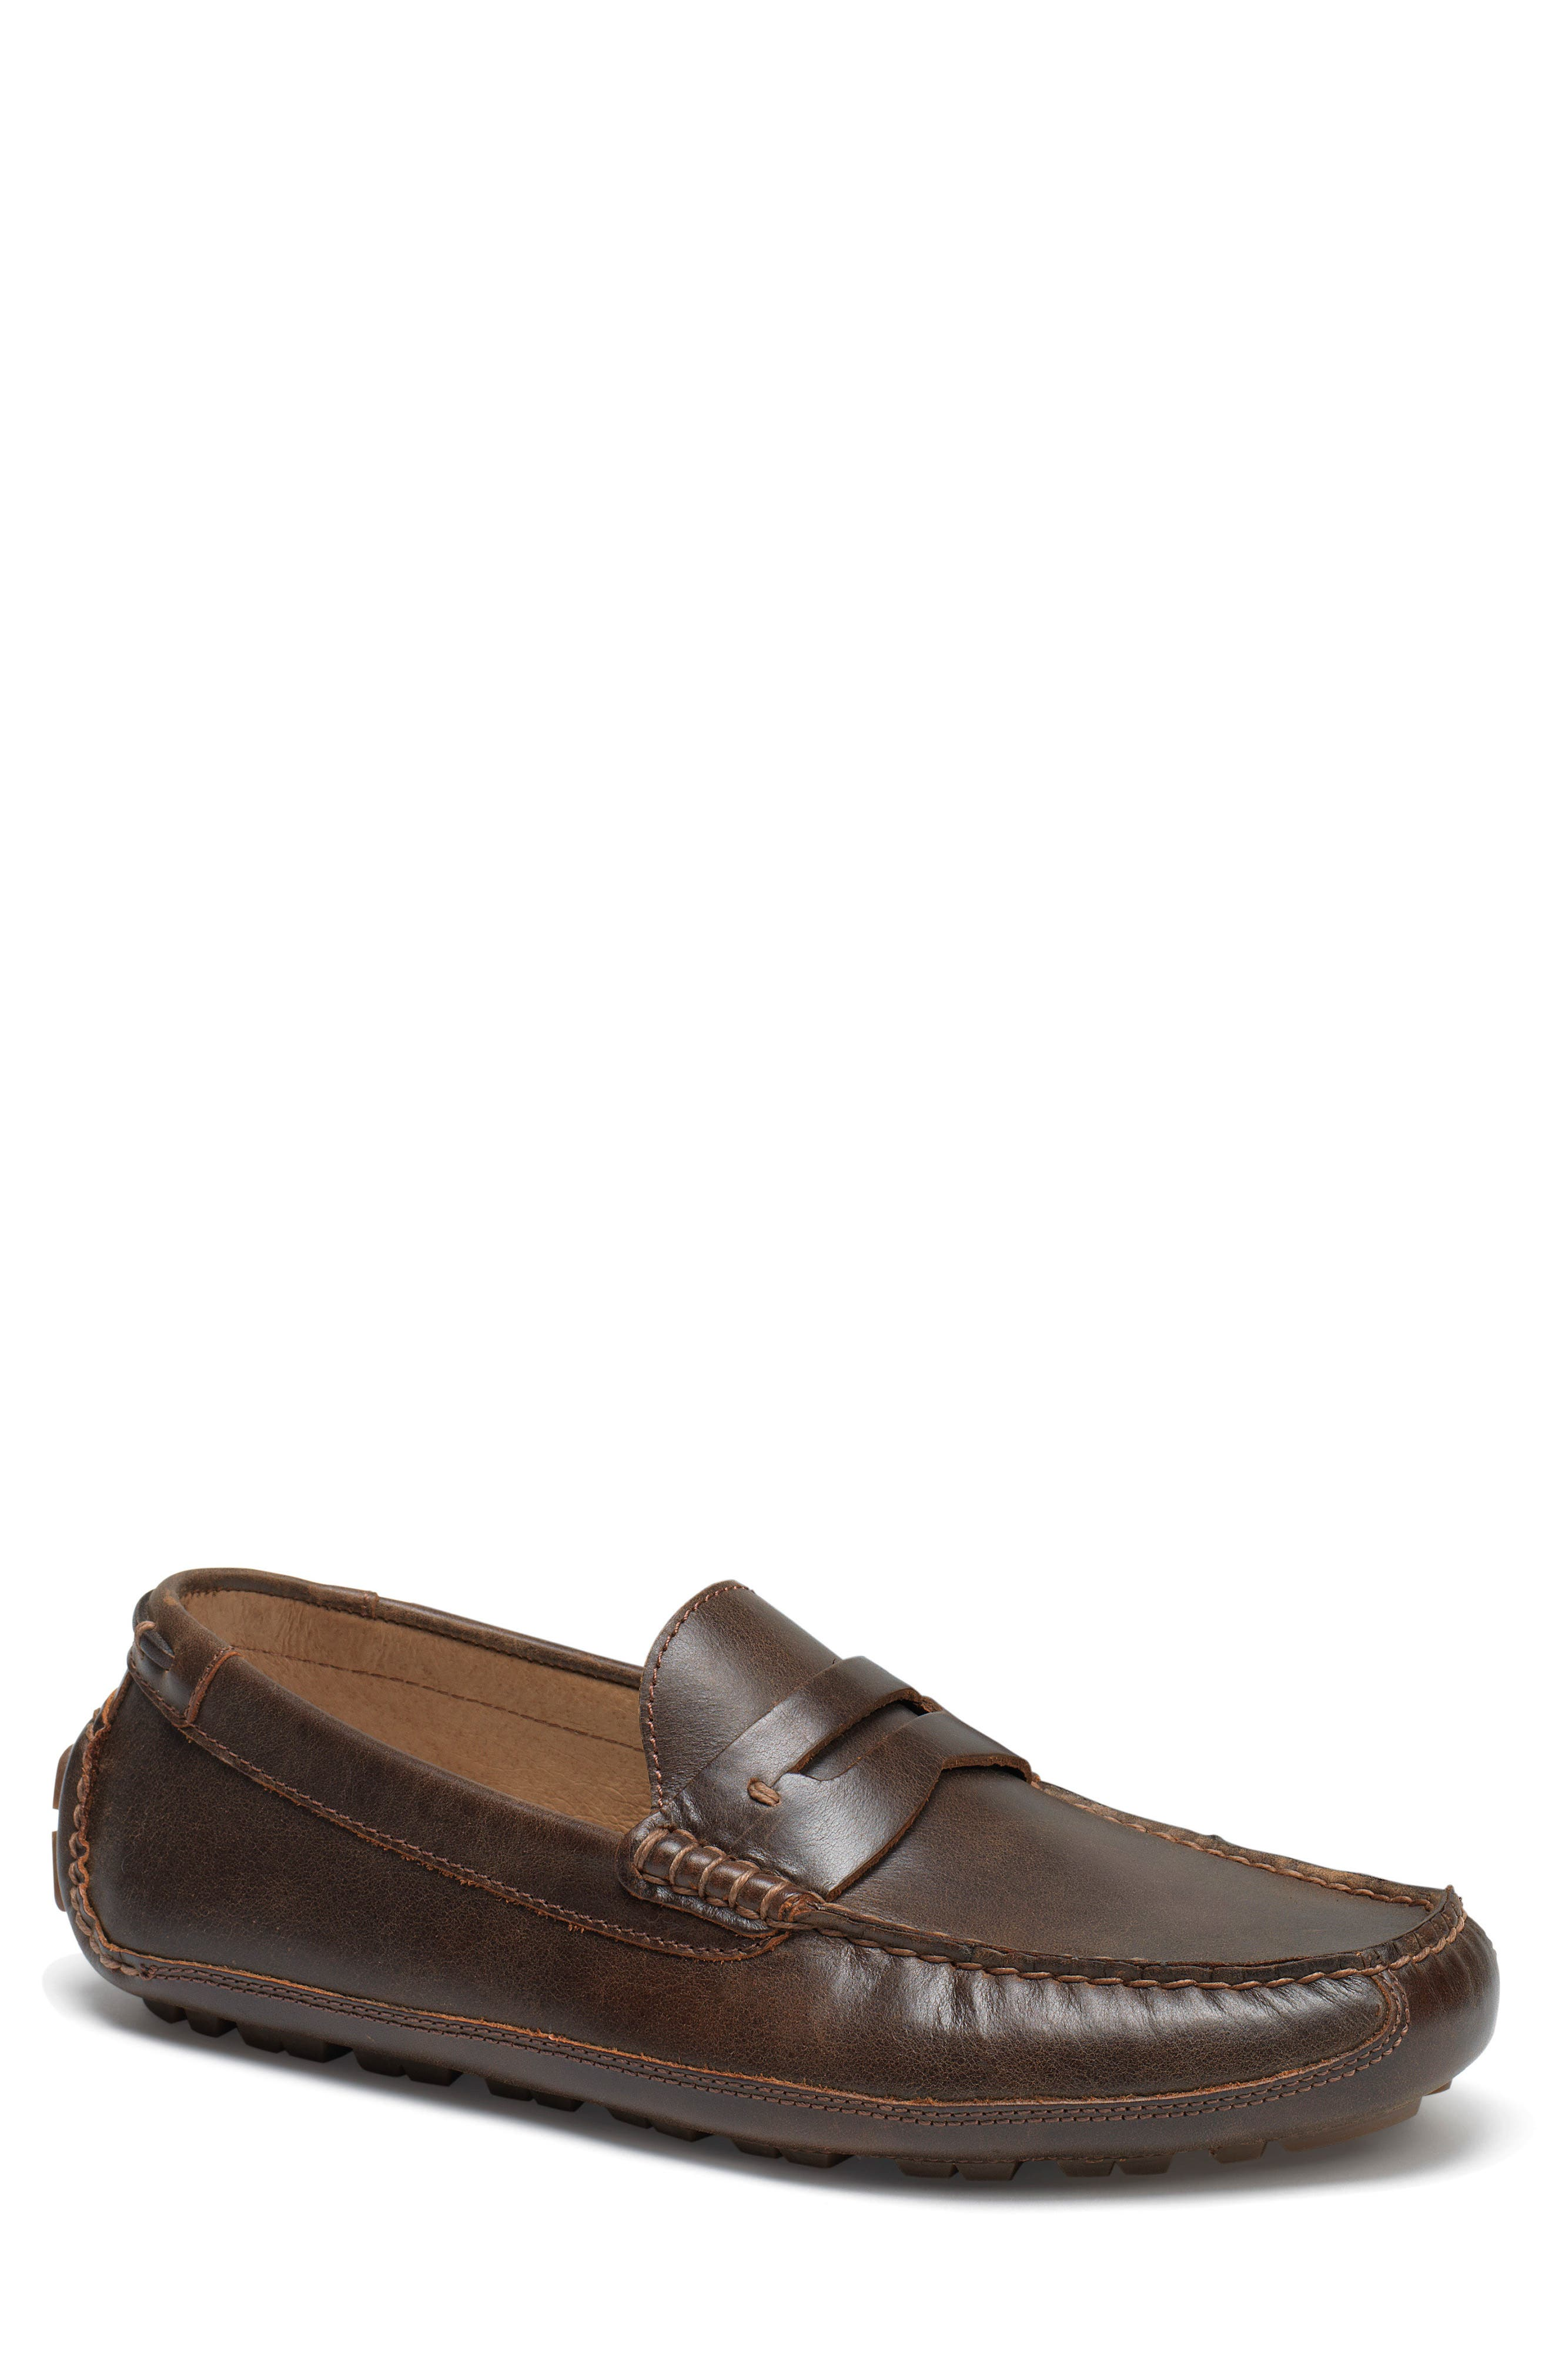 Dawson Water Resistant Driving Loafer,                         Main,                         color, DARK BROWN LEATHER